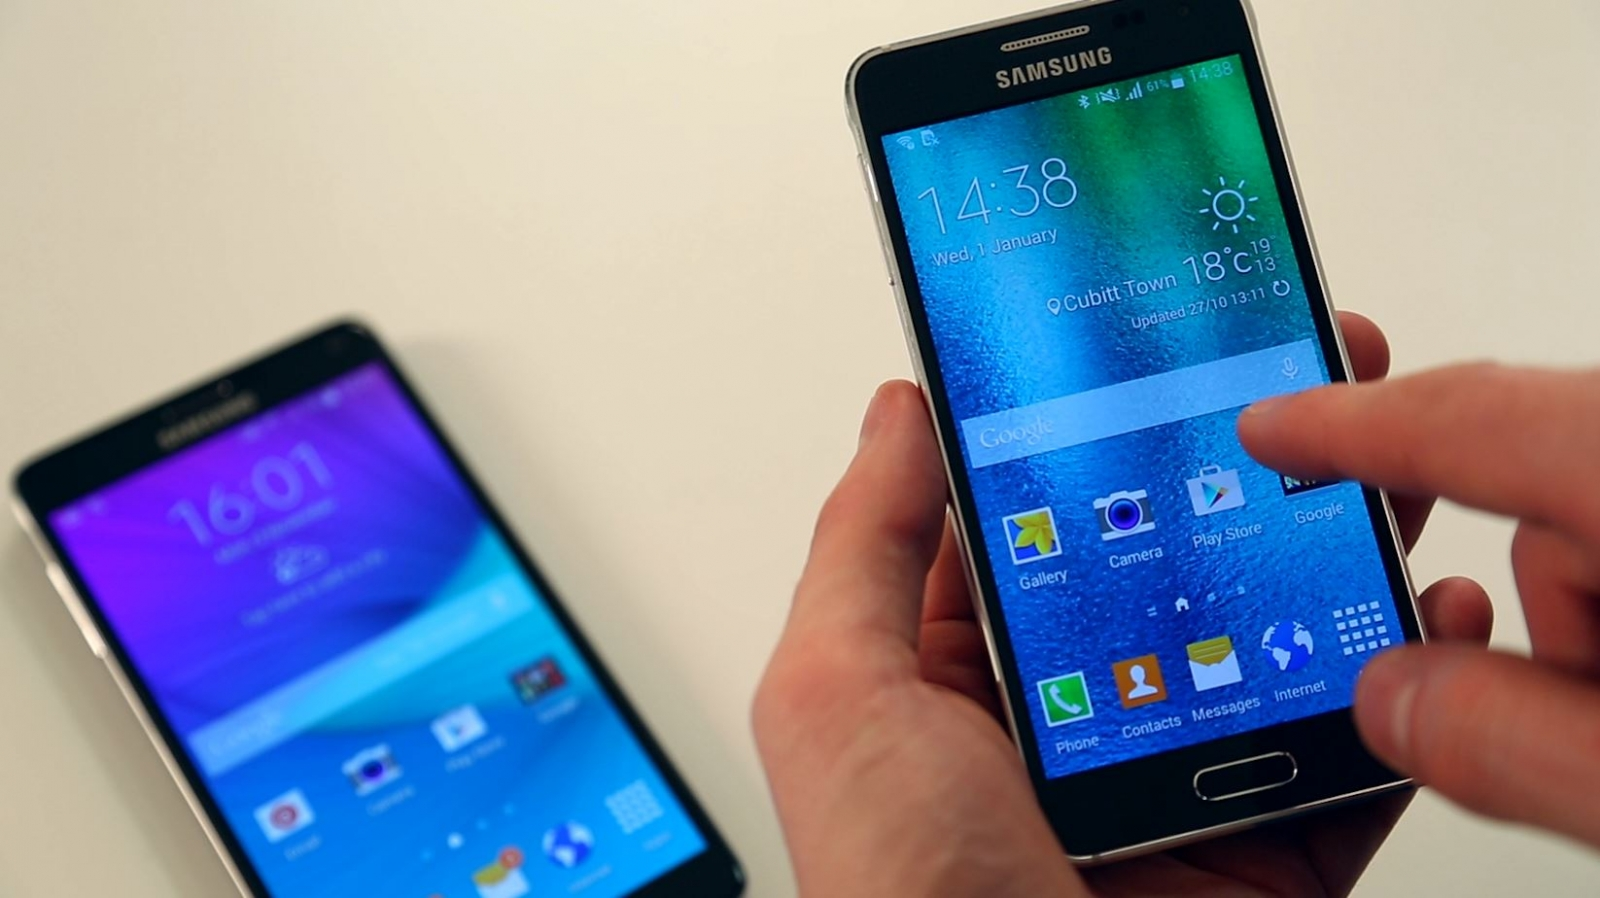 Tech Talk: Can Galaxy Alpha and Note 4 Stop Samsung's Sales Slump?